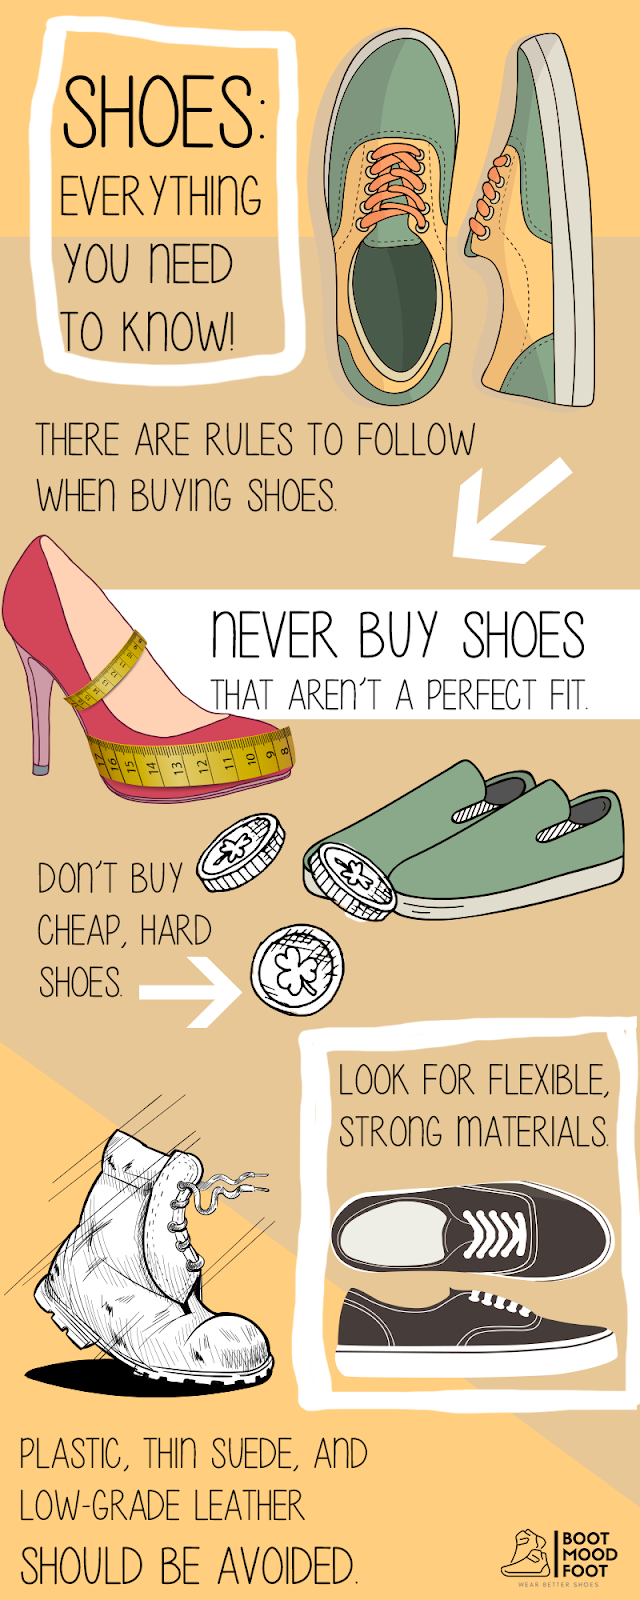 Shoes: Everything You Need to Know